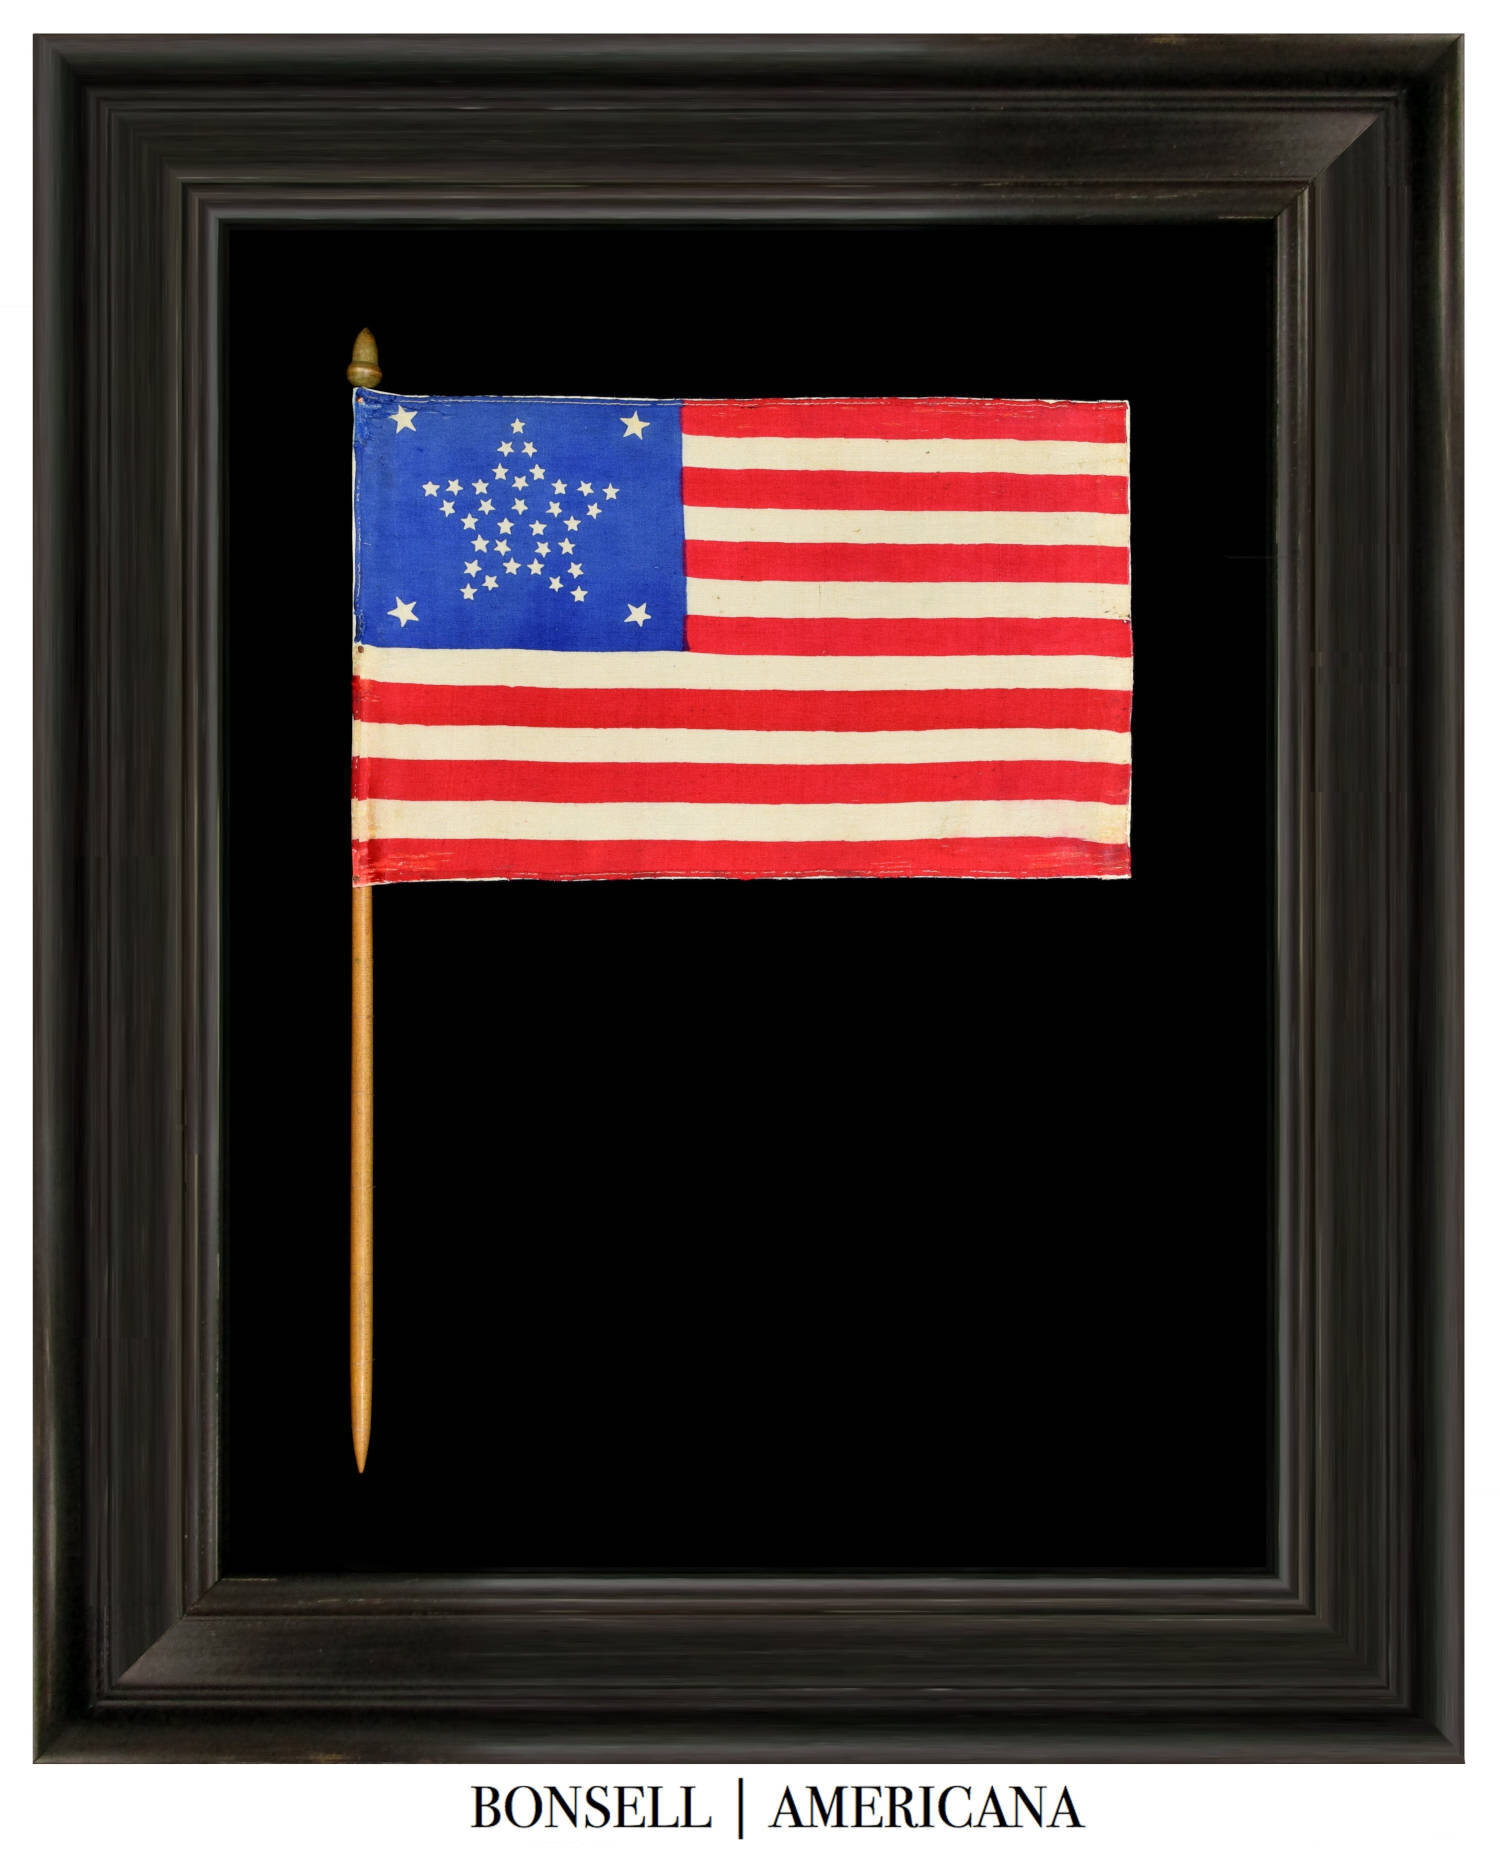 37 Star Antique Flag with a Grand Luminary Configuration